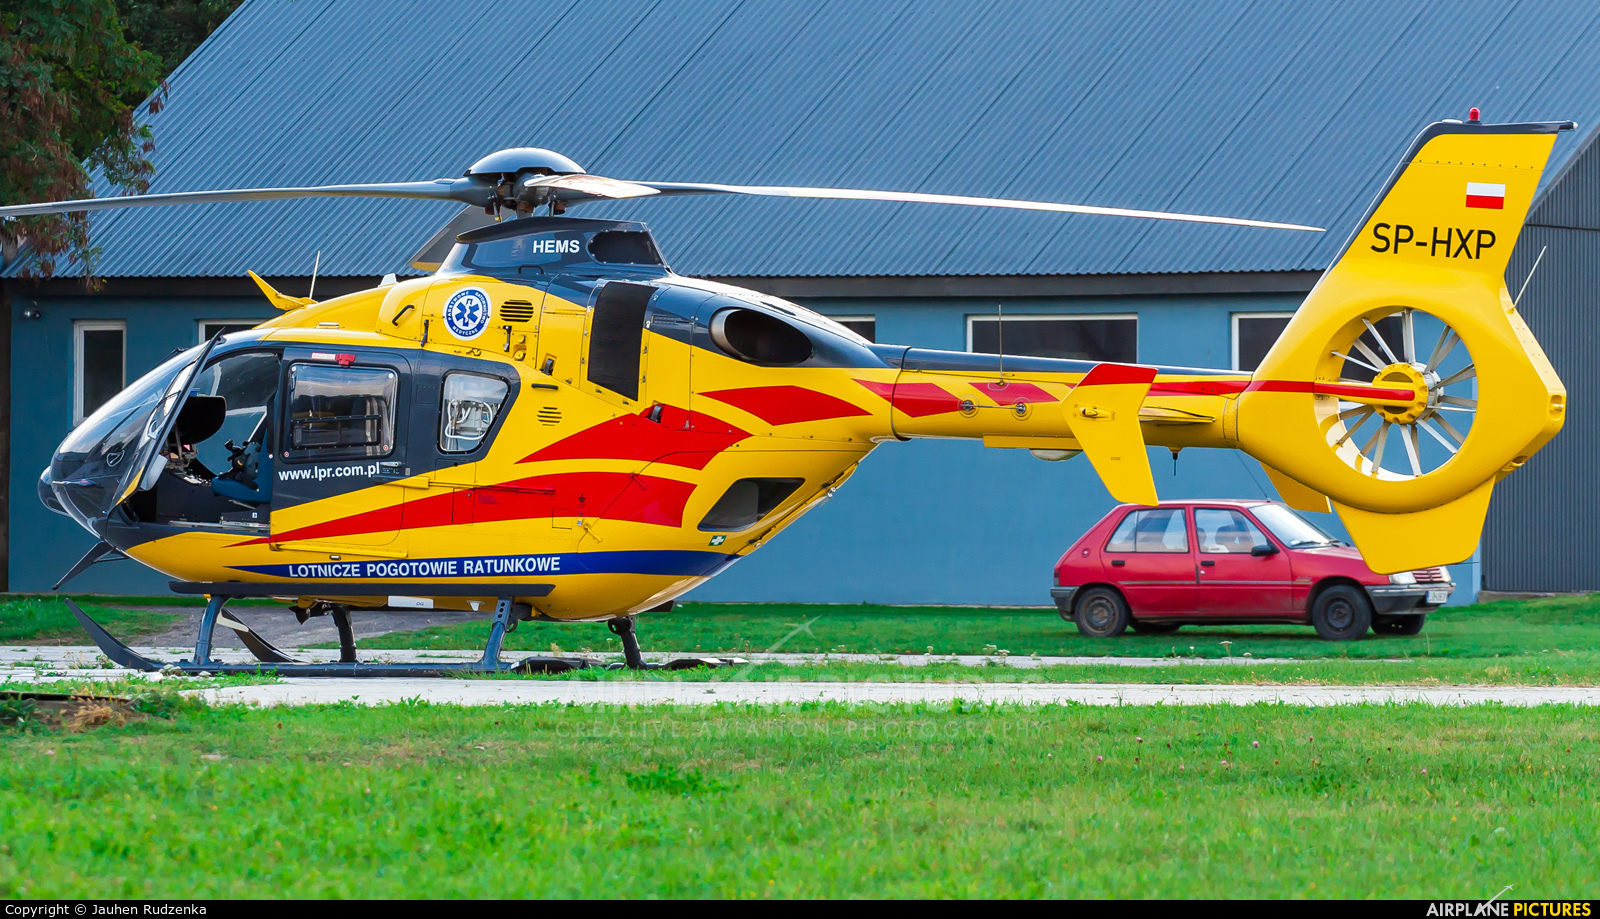 Polish Medical Air Rescue - Lotnicze Pogotowie Ratunkowe SP-HXP aircraft at Lublin Radawiec